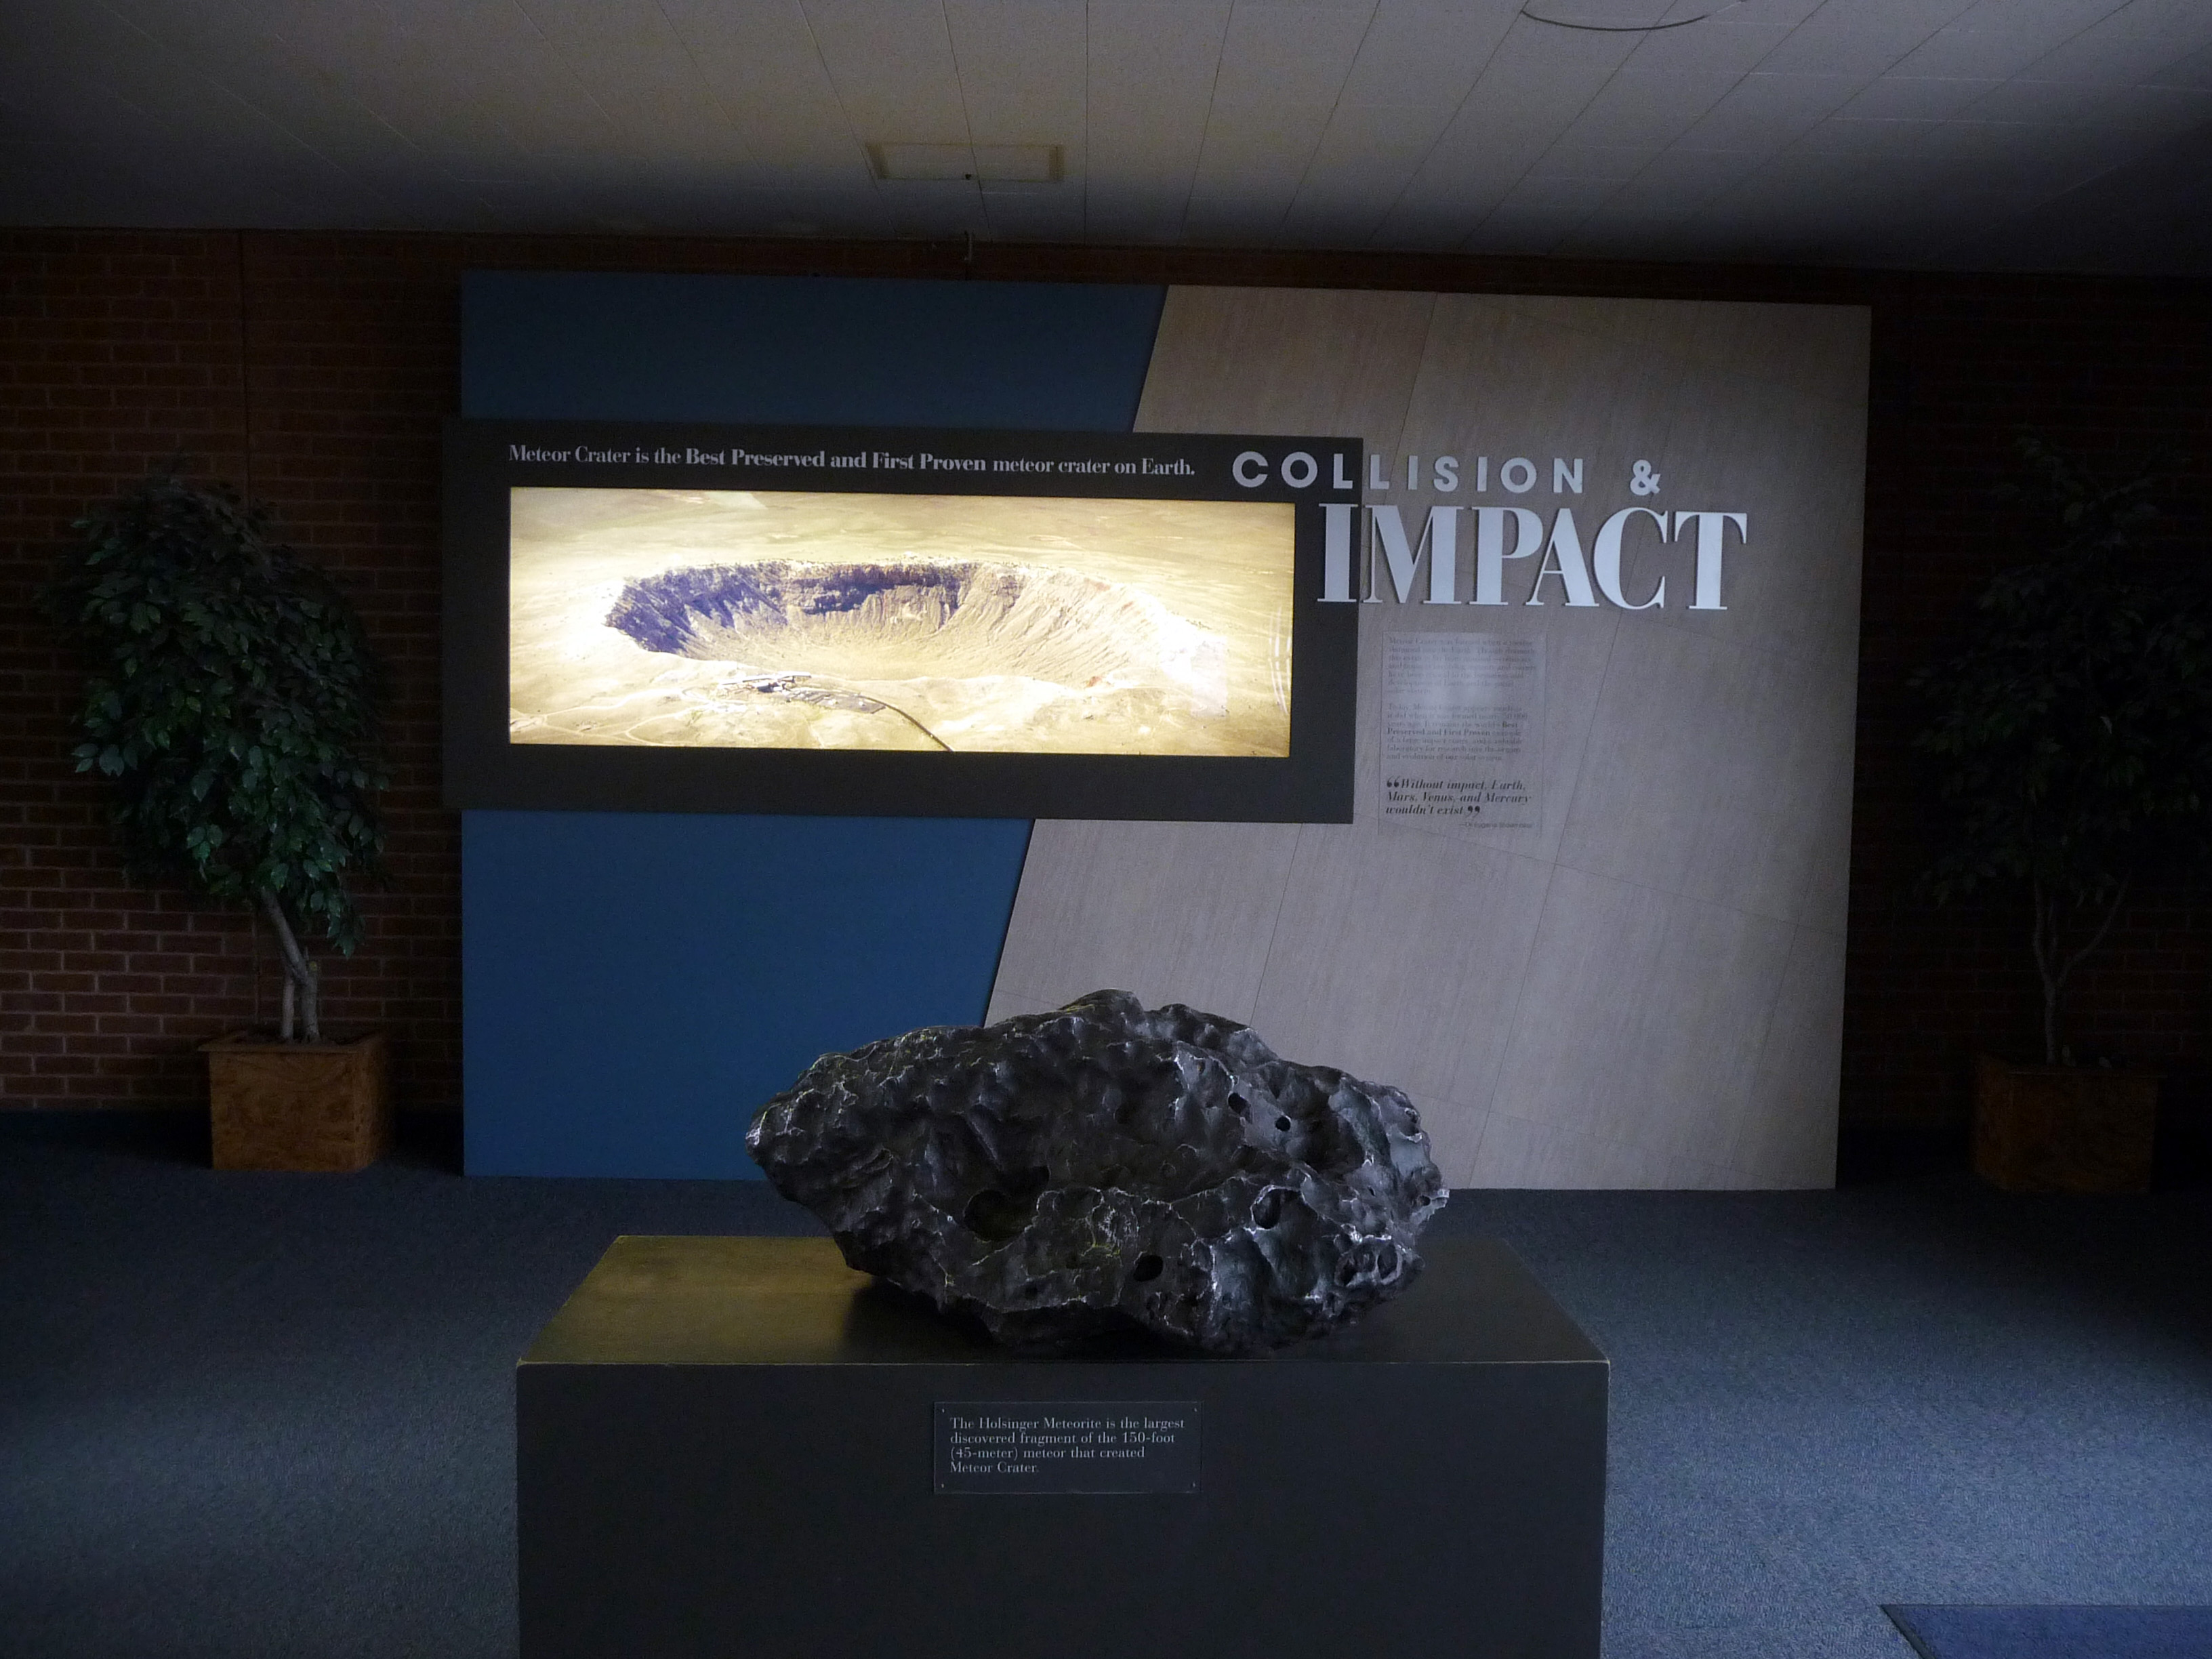 The meteor crater museum